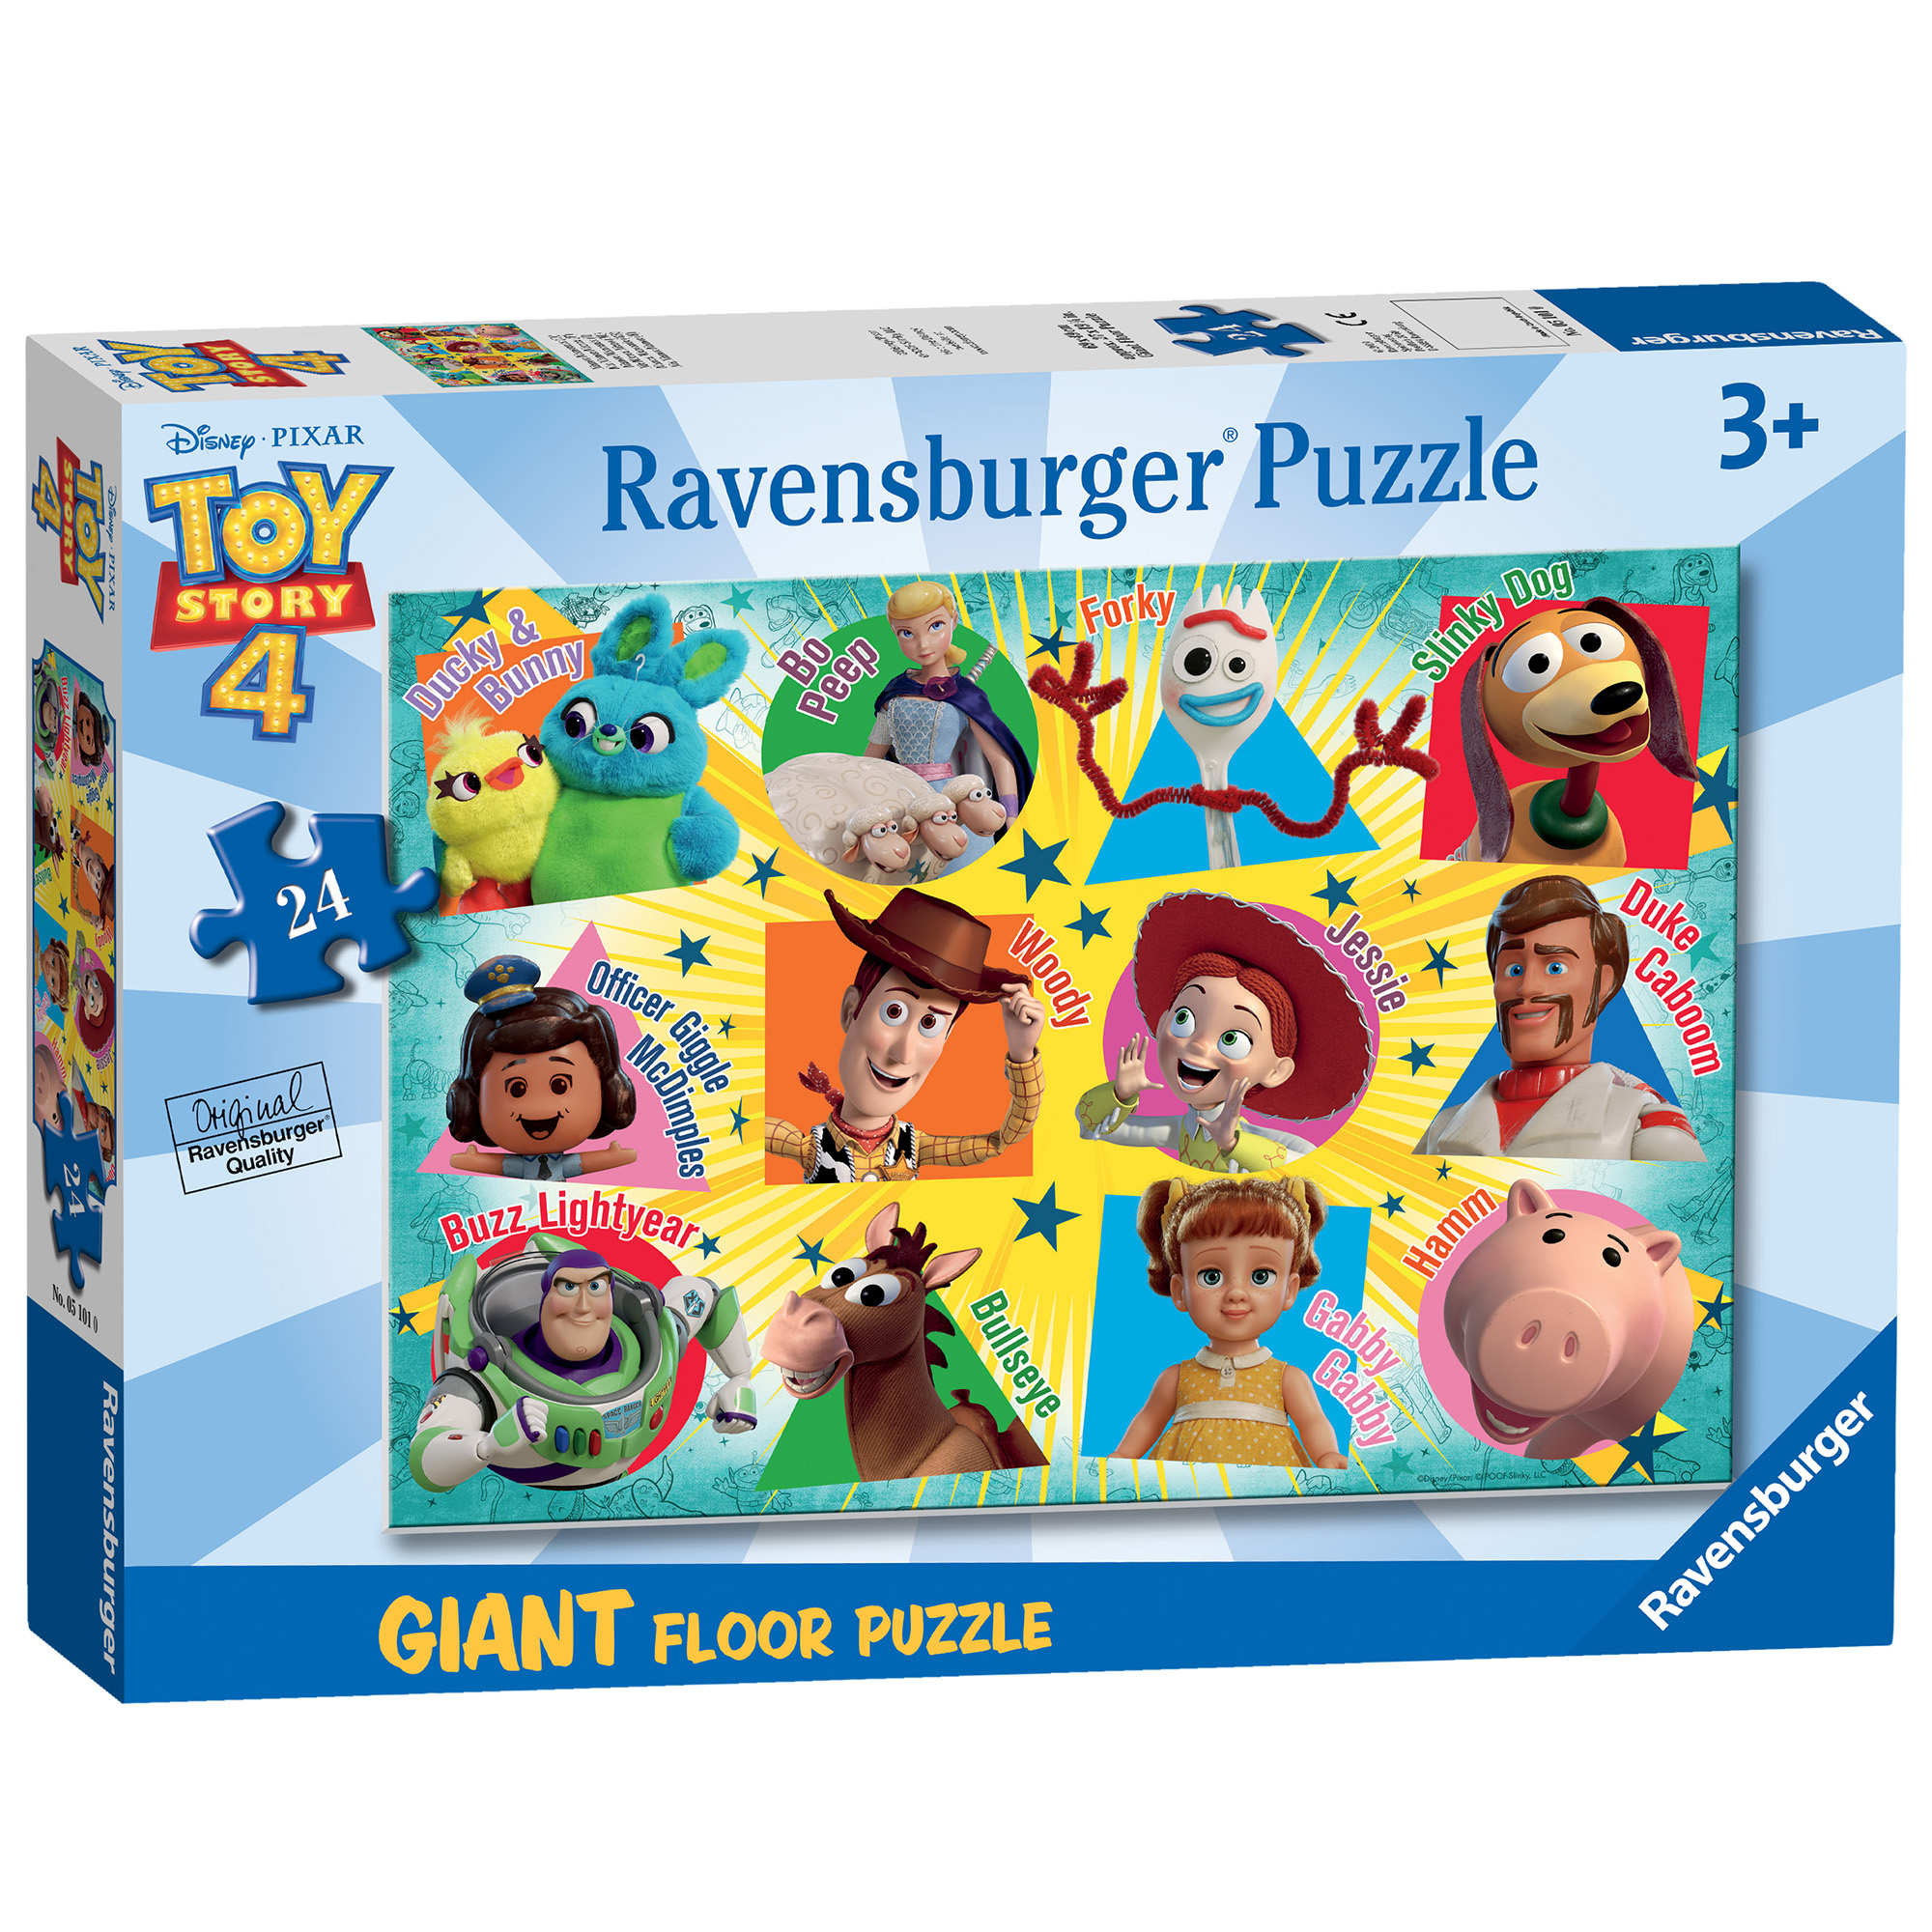 Picture of Ravensburger Disney Toy Story 4, 24pc Giant Floor